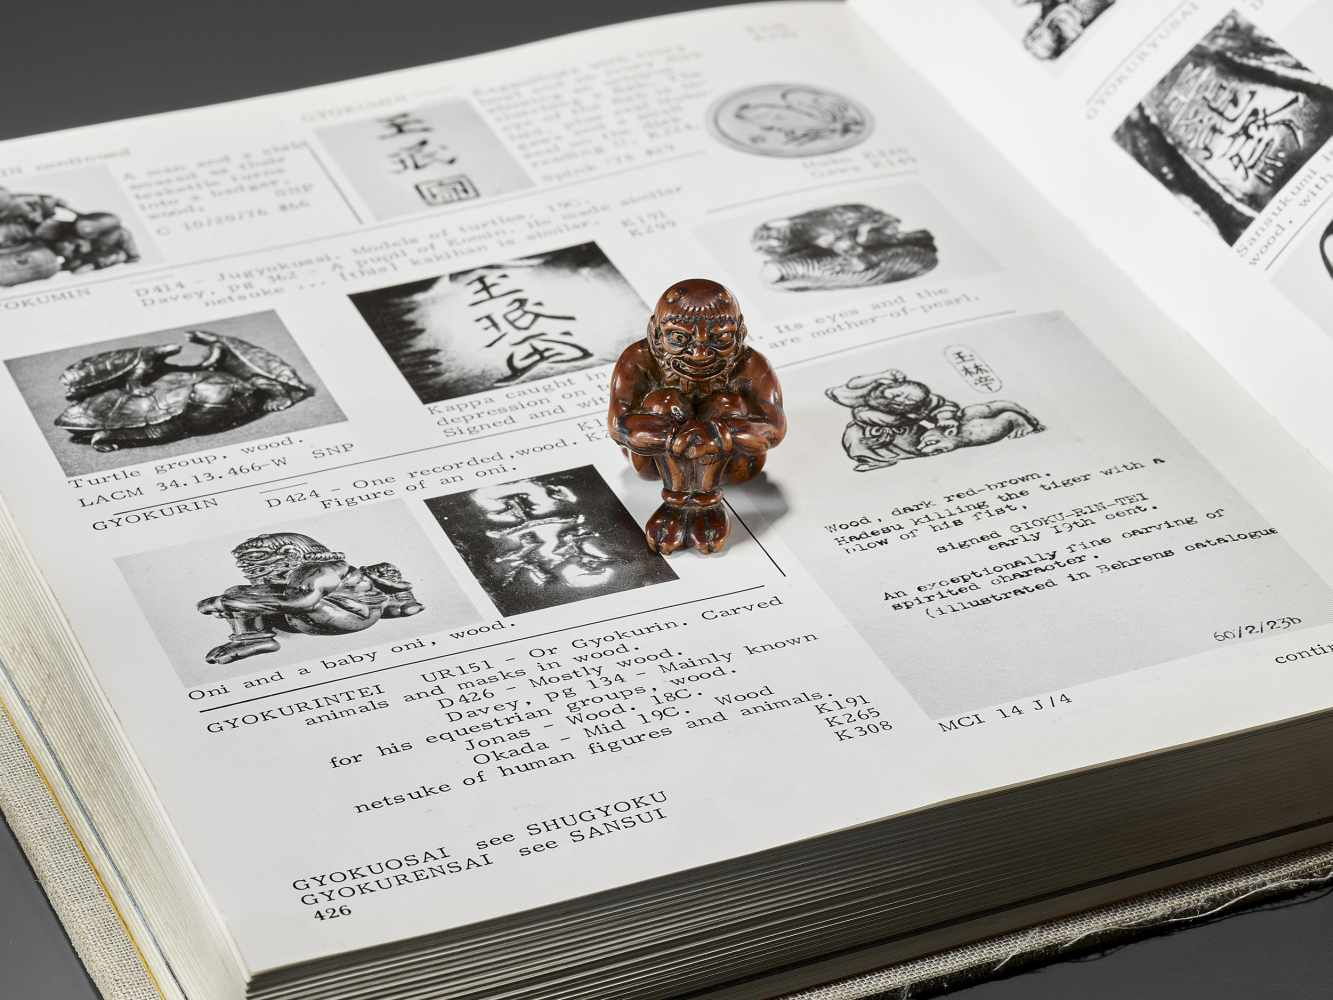 GYOKURIN: AN AMUSING WOOD NETSUKE OF RAIJIN WITH RAITARO By Gyokurin, signed GyokurinJapan, early - Image 2 of 12